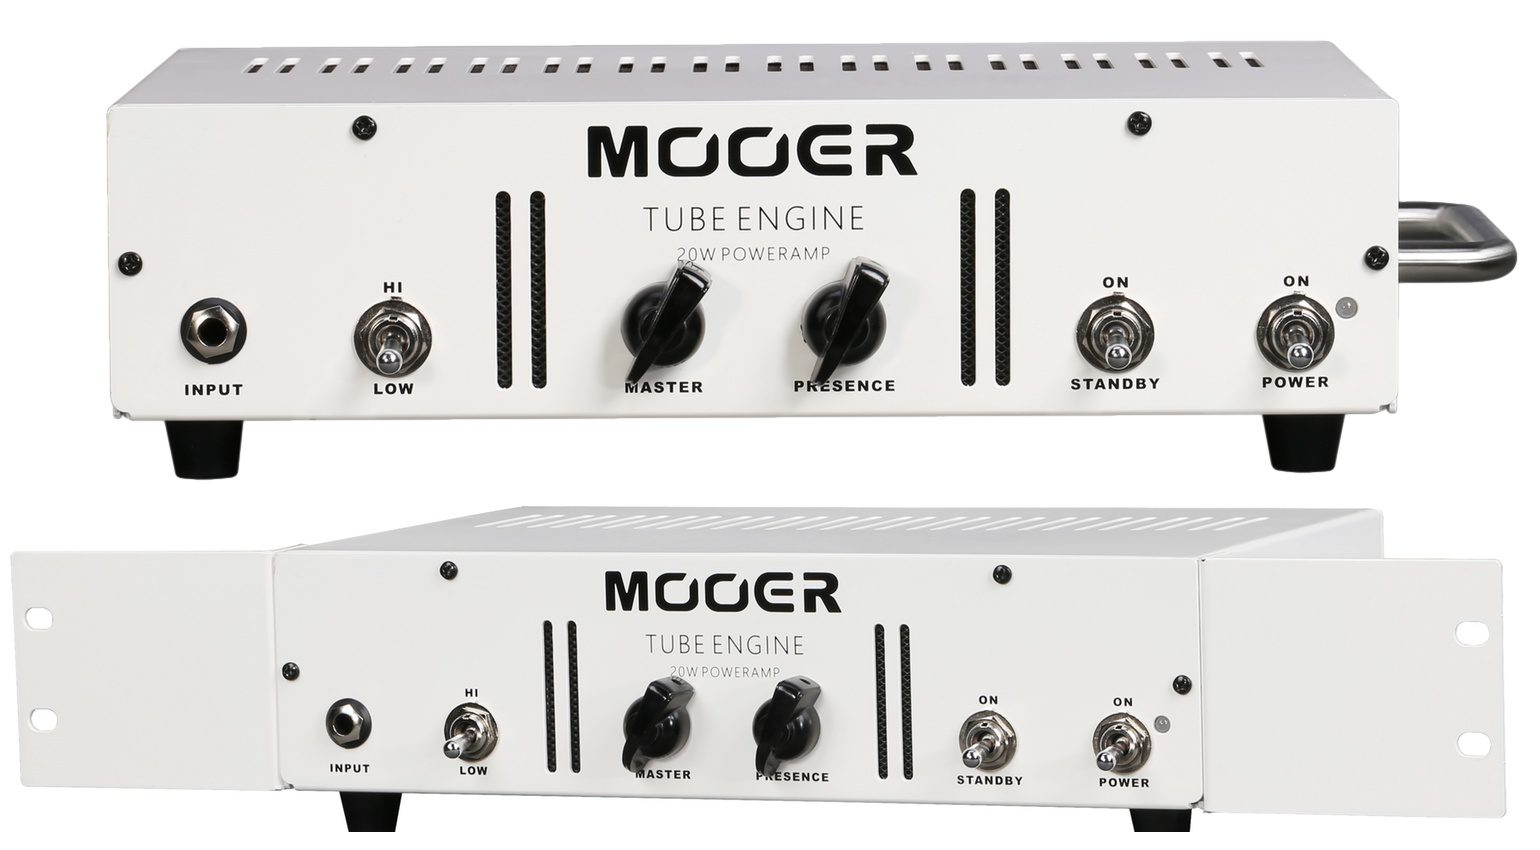 Mooer Tube Engine Front Topteil Rack